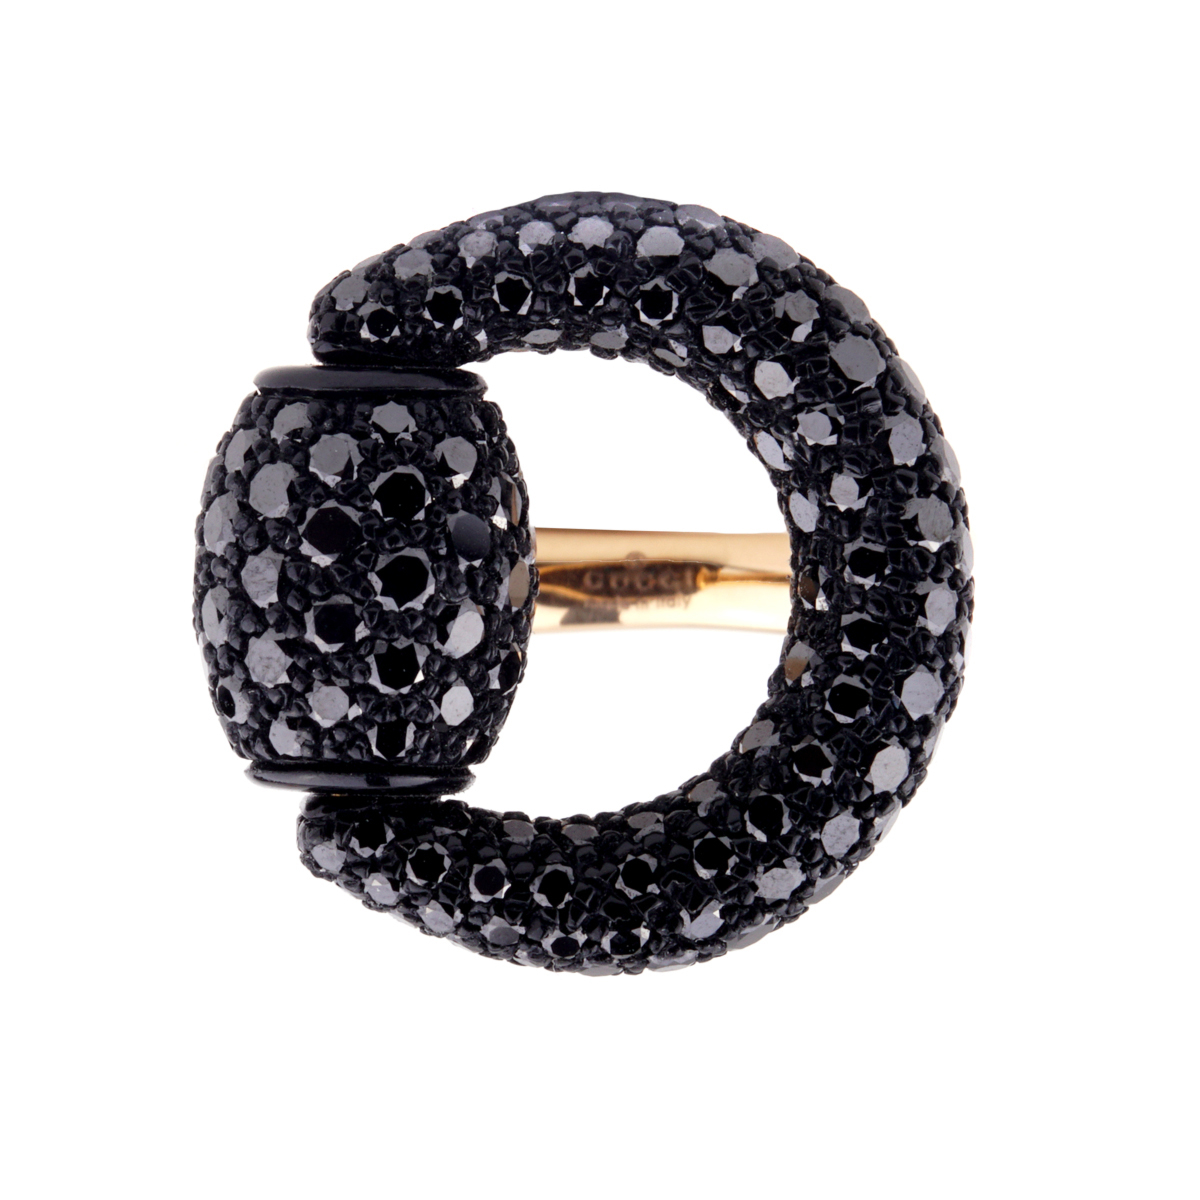 Gucci Black Diamond Horsebit Rose Gold Ring - Gucci Jewelry